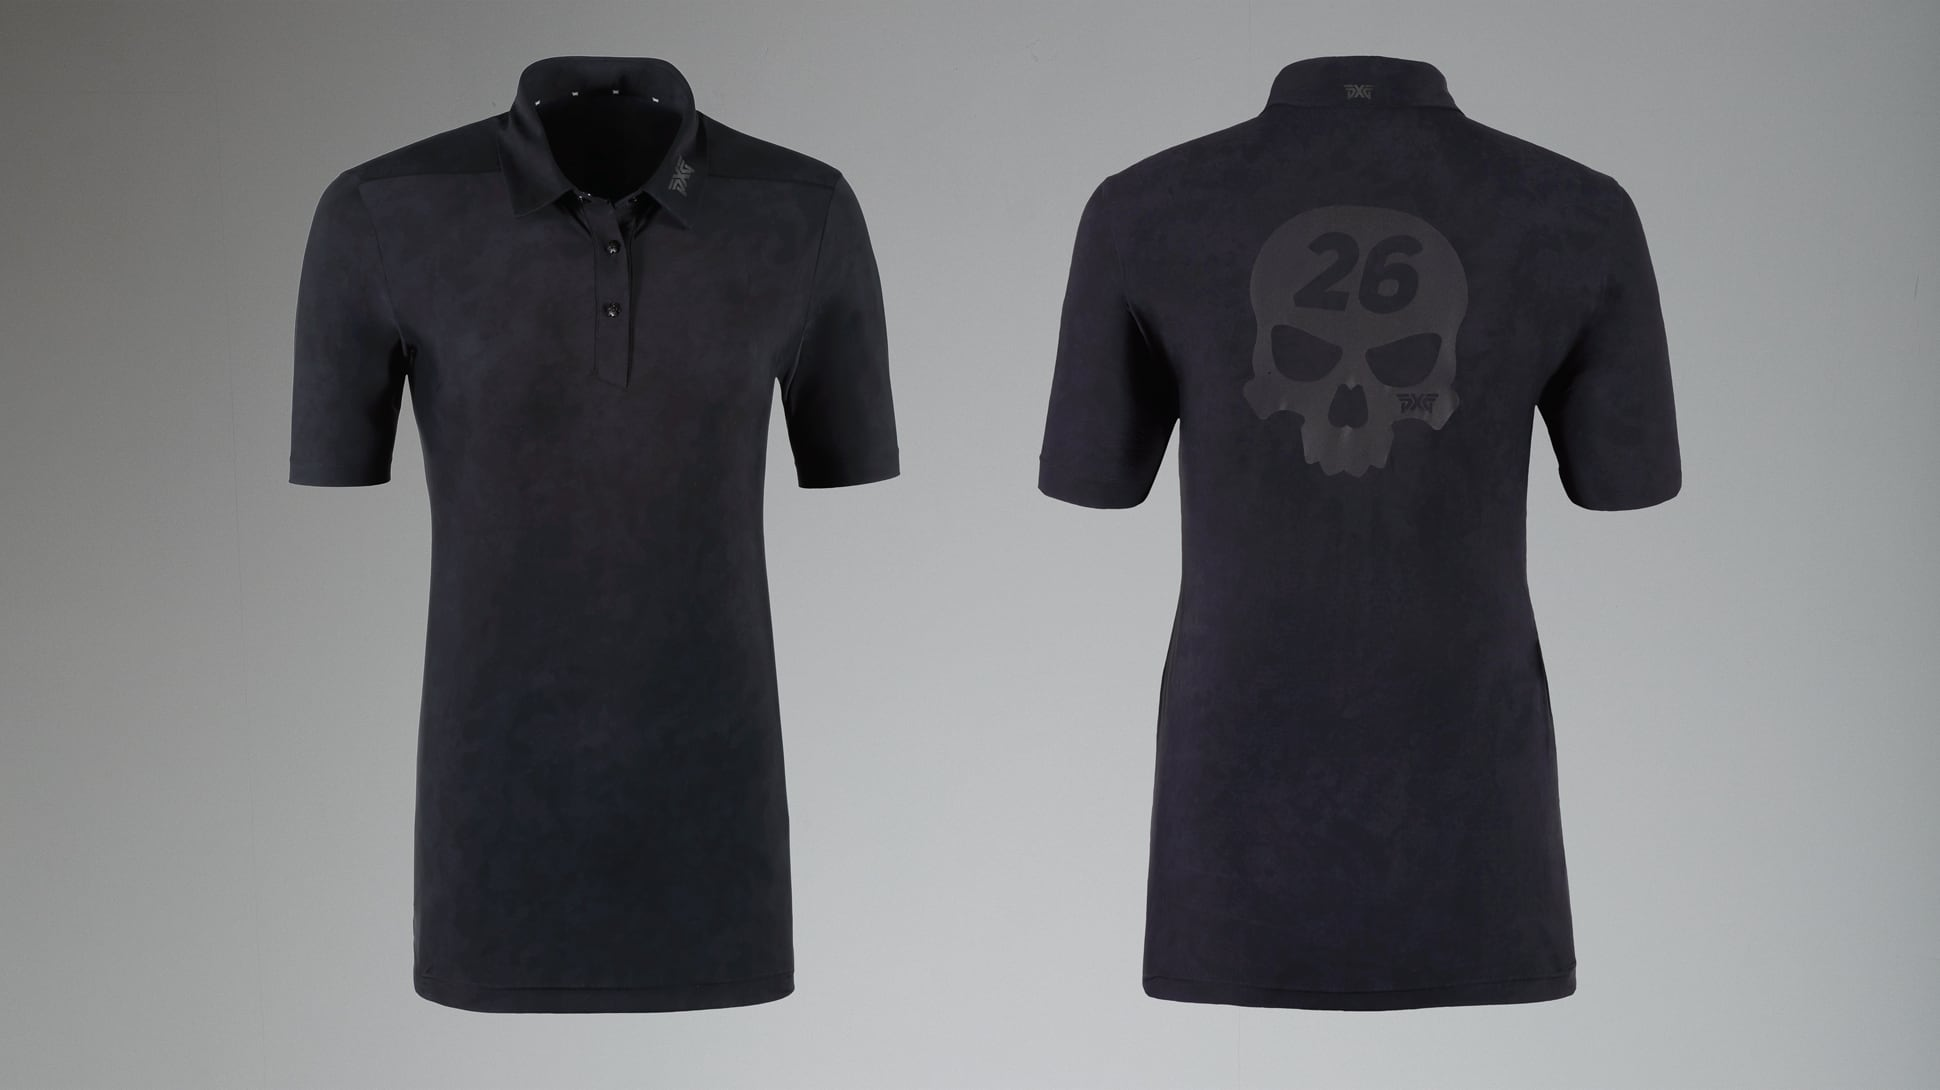 Darkness Polo Image 2